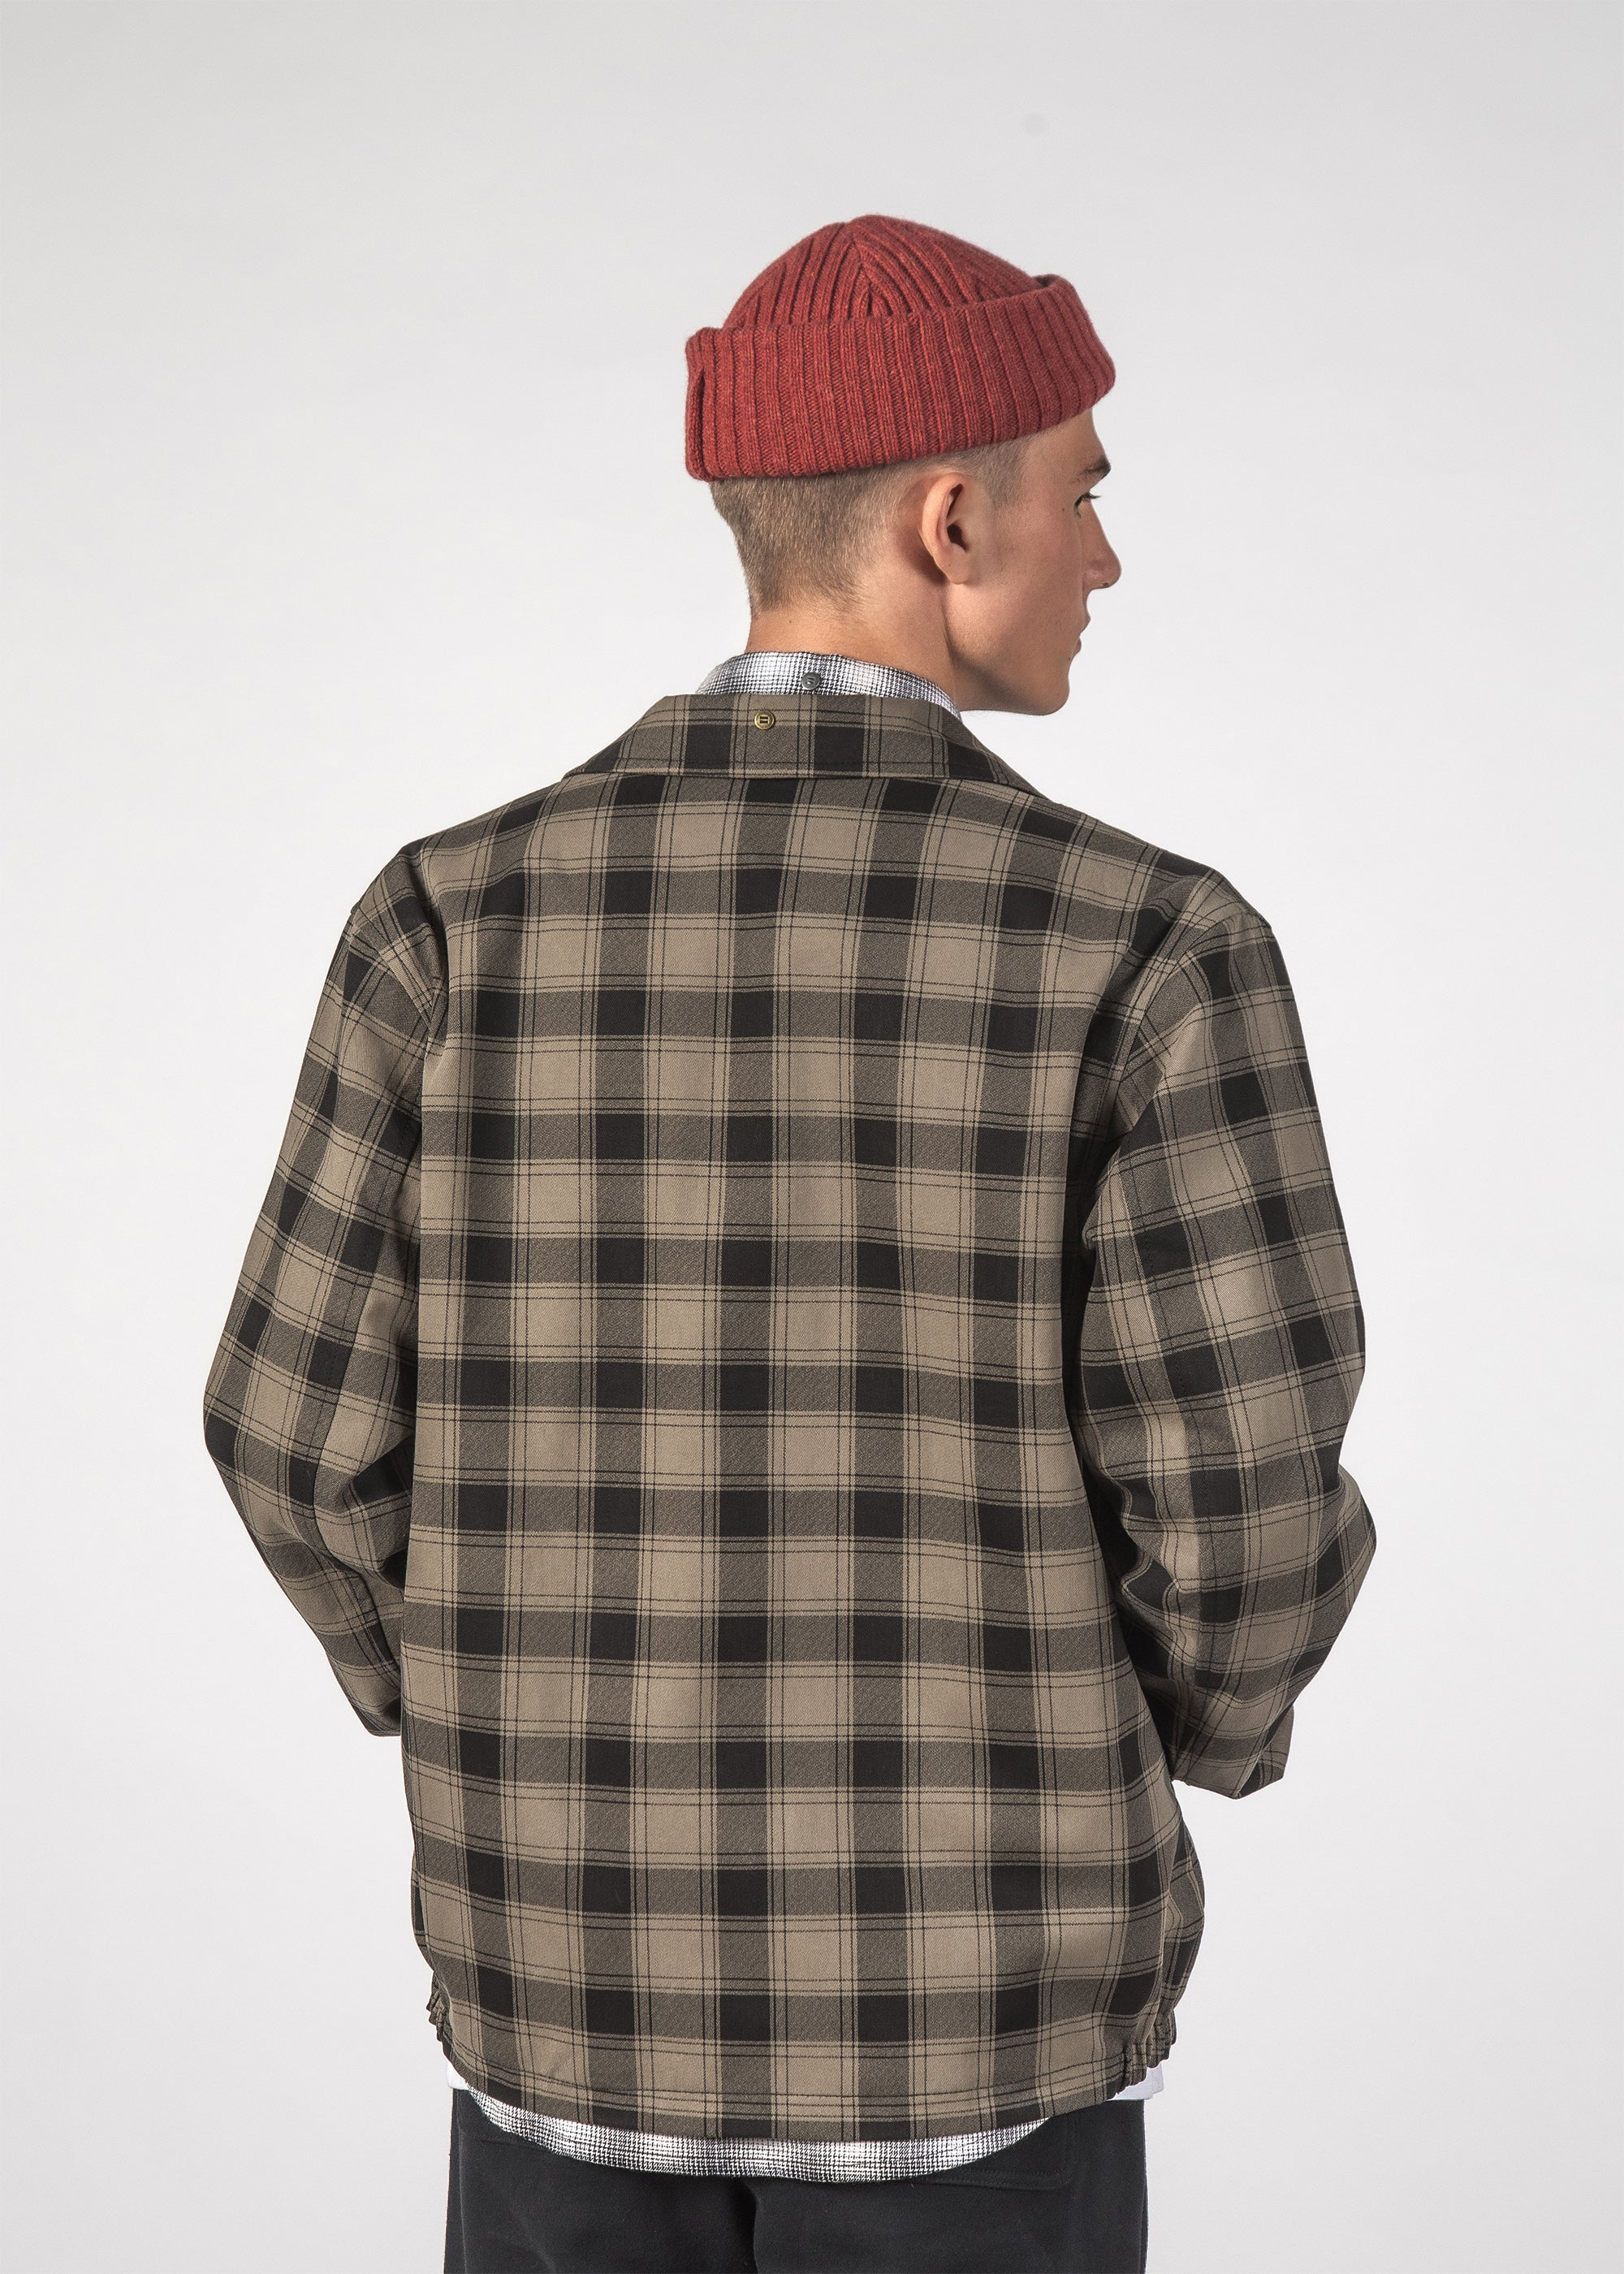 SALE - REVERSIBLE MACH JACKET - Khaki Plaid